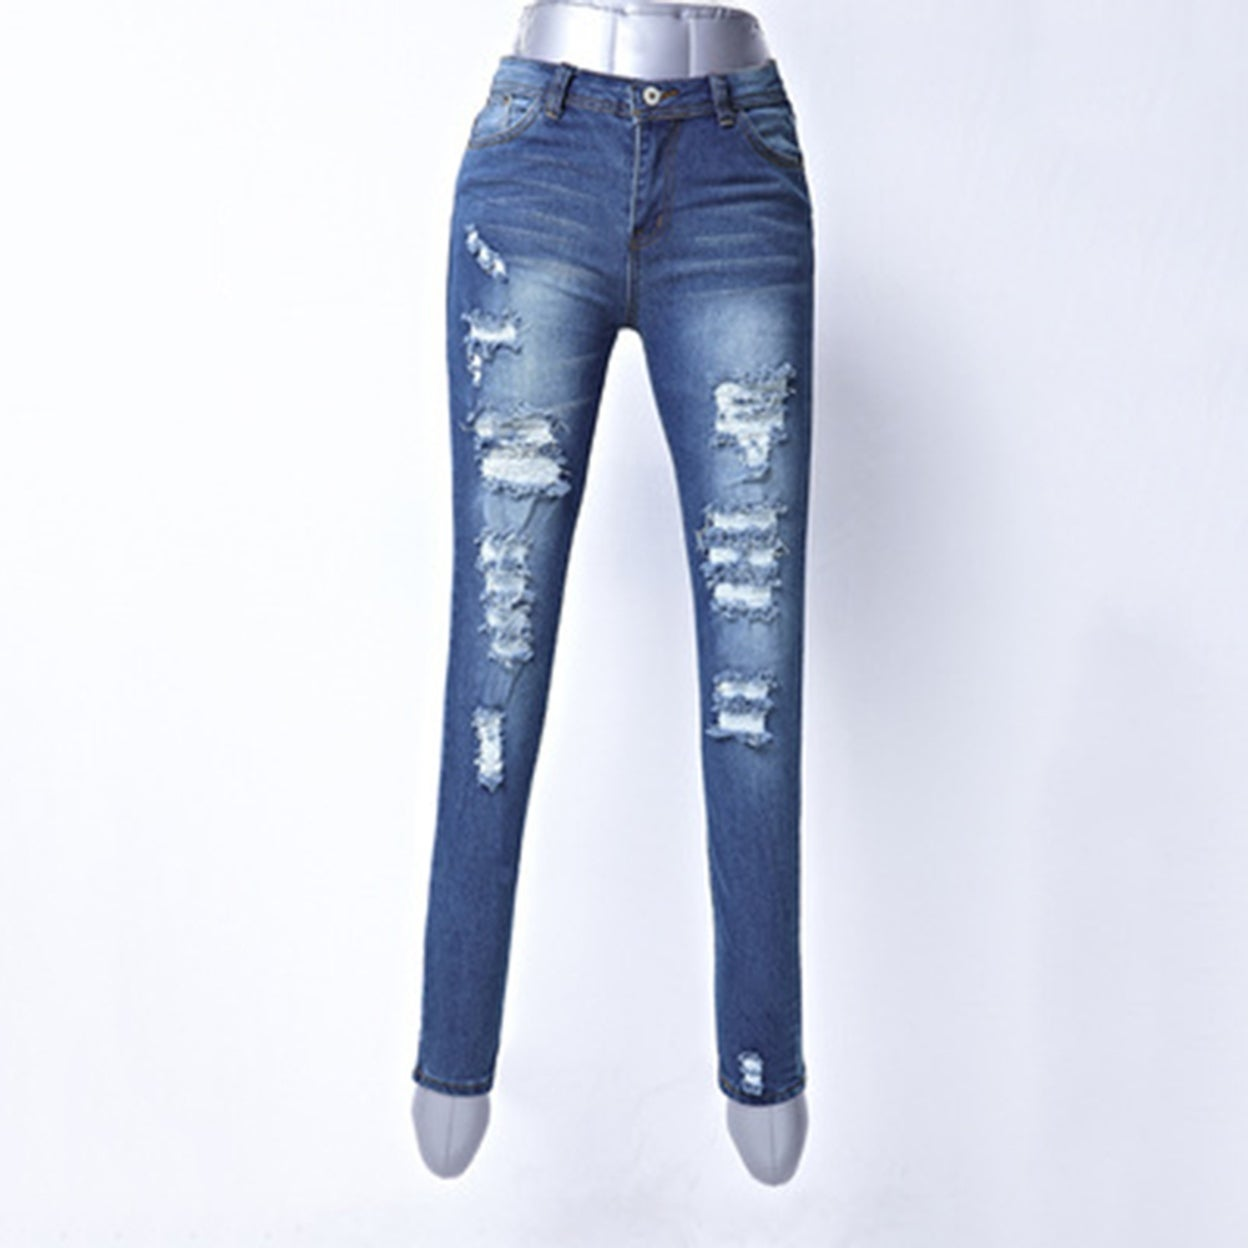 1cf20cafead7 Shop Ladies hot Ripped Jeans Casual Elastic Denim Slim Pencil Long Pants  Gift - Free Shipping On Orders Over $45 - Overstock - 23167990